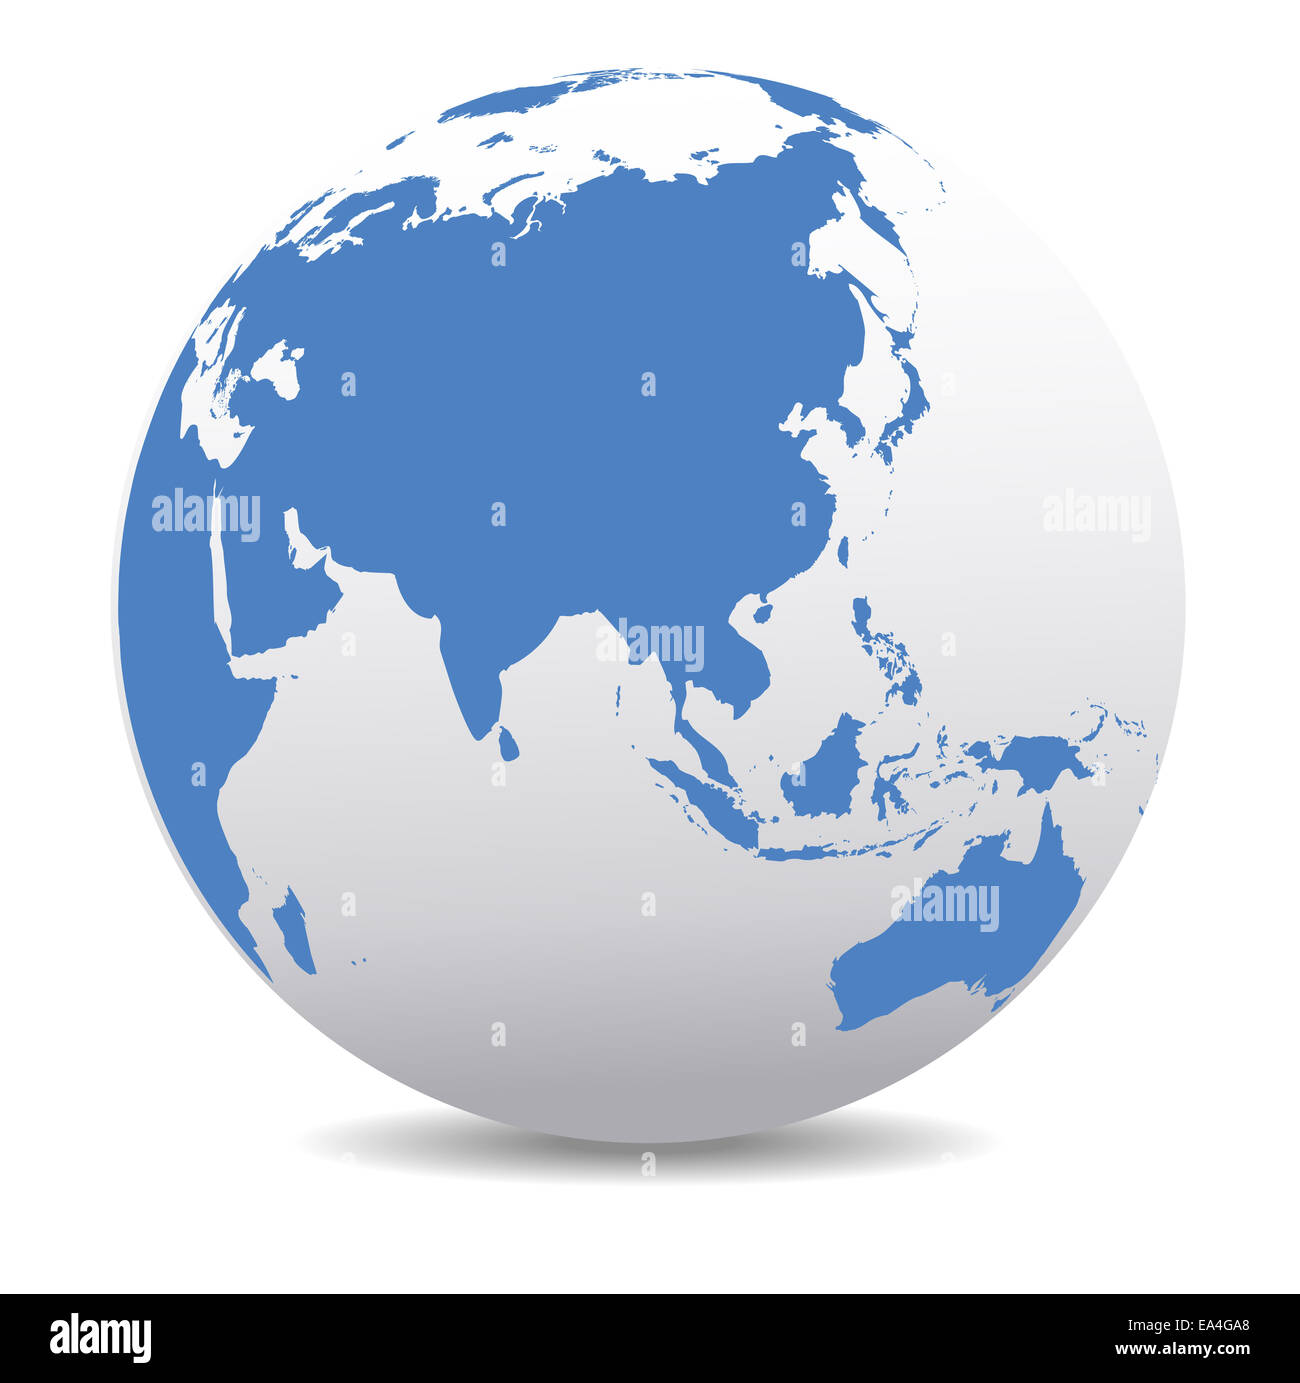 Asia china japan world earth icon globe map stock photo 75088672 asia china japan world earth icon globe map gumiabroncs Images